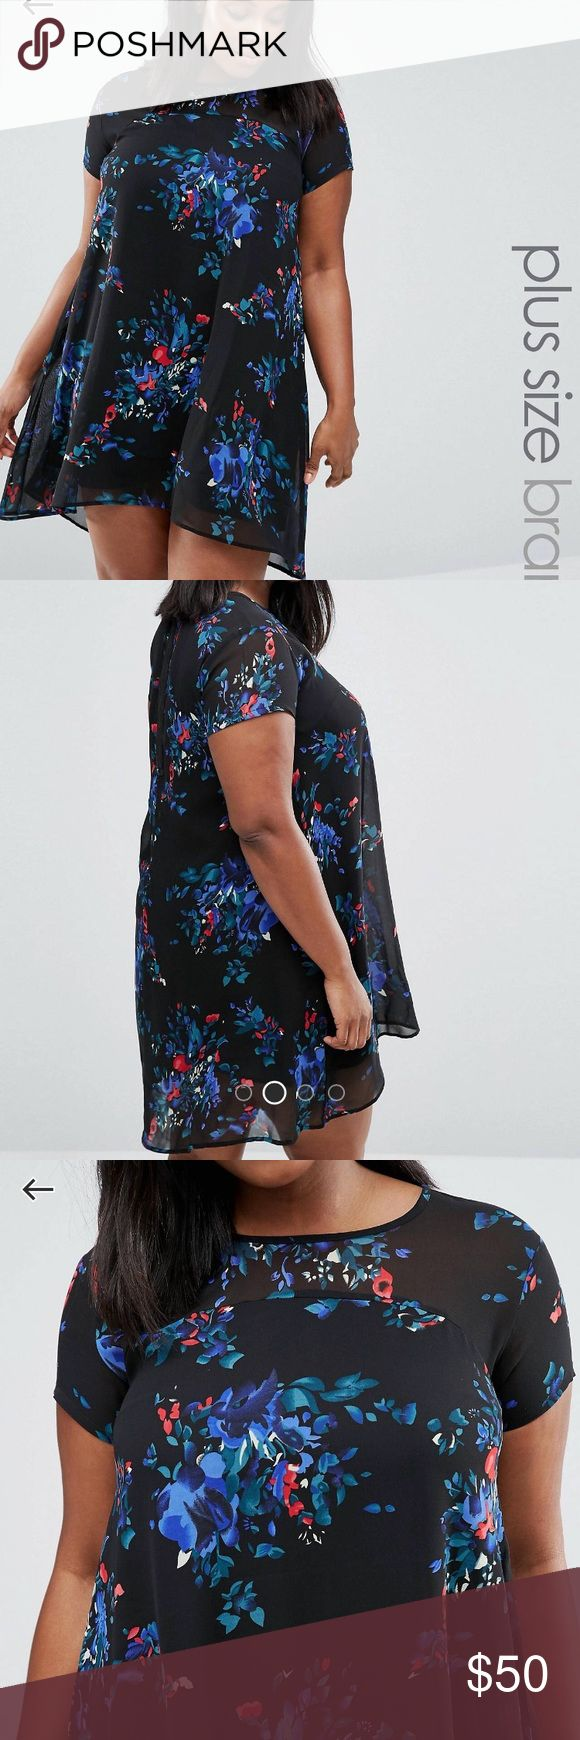 AX Paris Plus Swing dress with Sheer insert Woven fabric Round neckline All-over floral print Semi-sheer panels Zip-back fastening Swing design Loose fit - falls loosely over the body Hand wash 100% Polyester ASOS Curve Dresses High Low